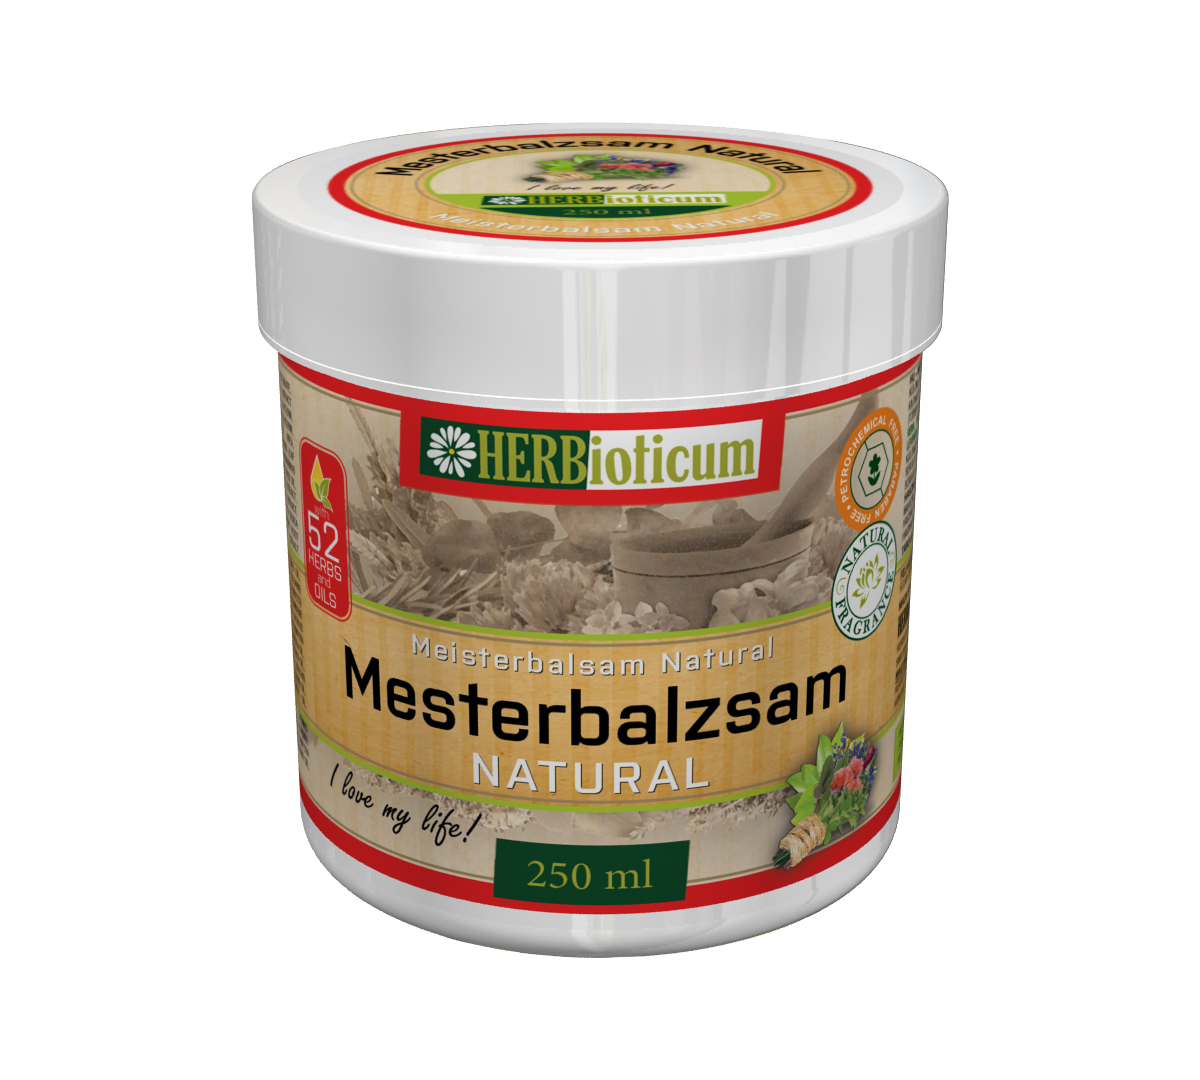 herbioticum-mesterbalzsam-natural-250ml-52